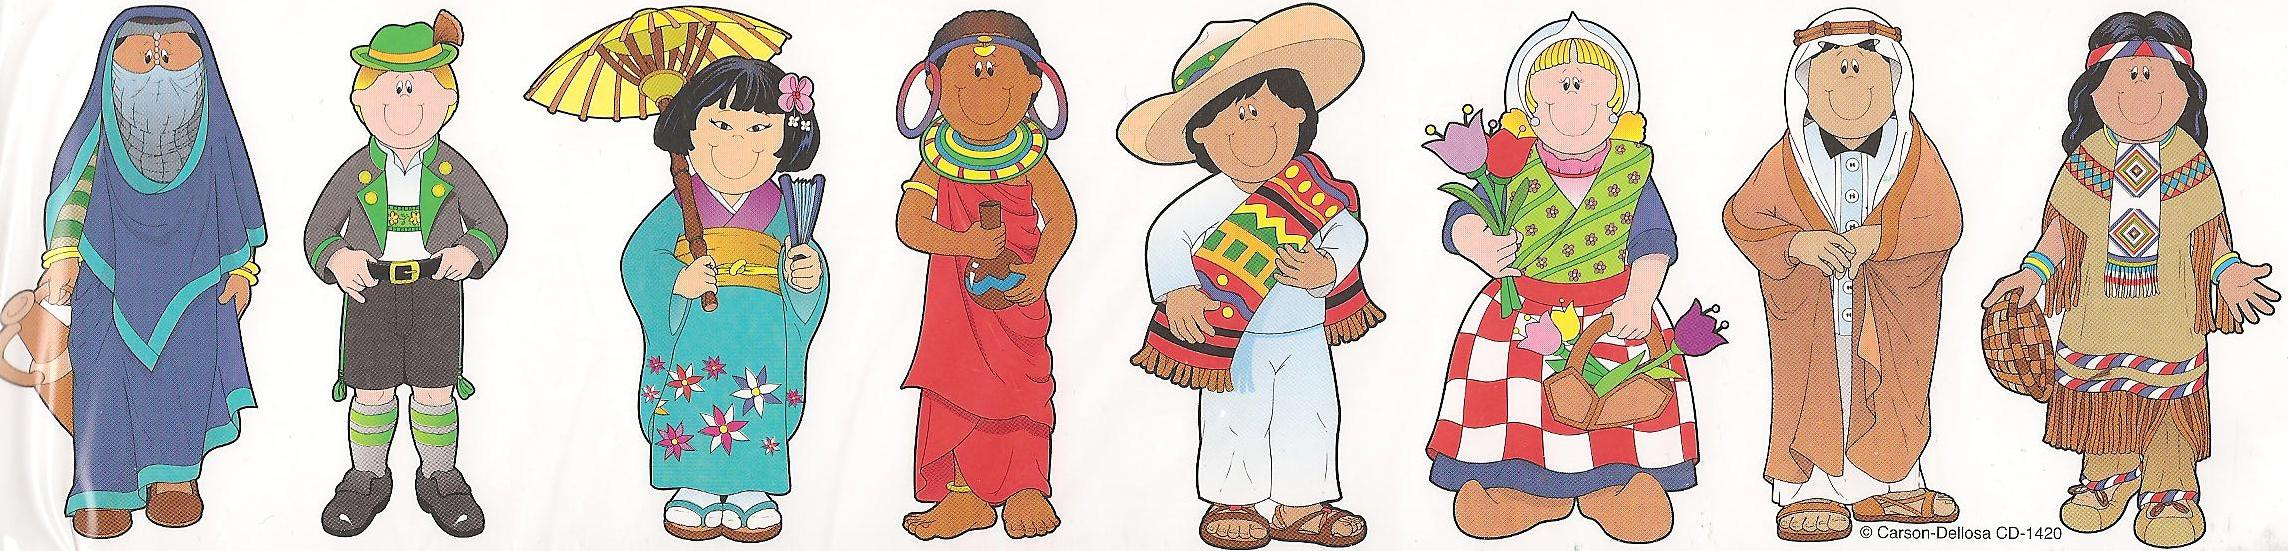 Multicultural clipart free clipart free Free Multicultural Cliparts, Download Free Clip Art, Free Clip Art ... clipart free